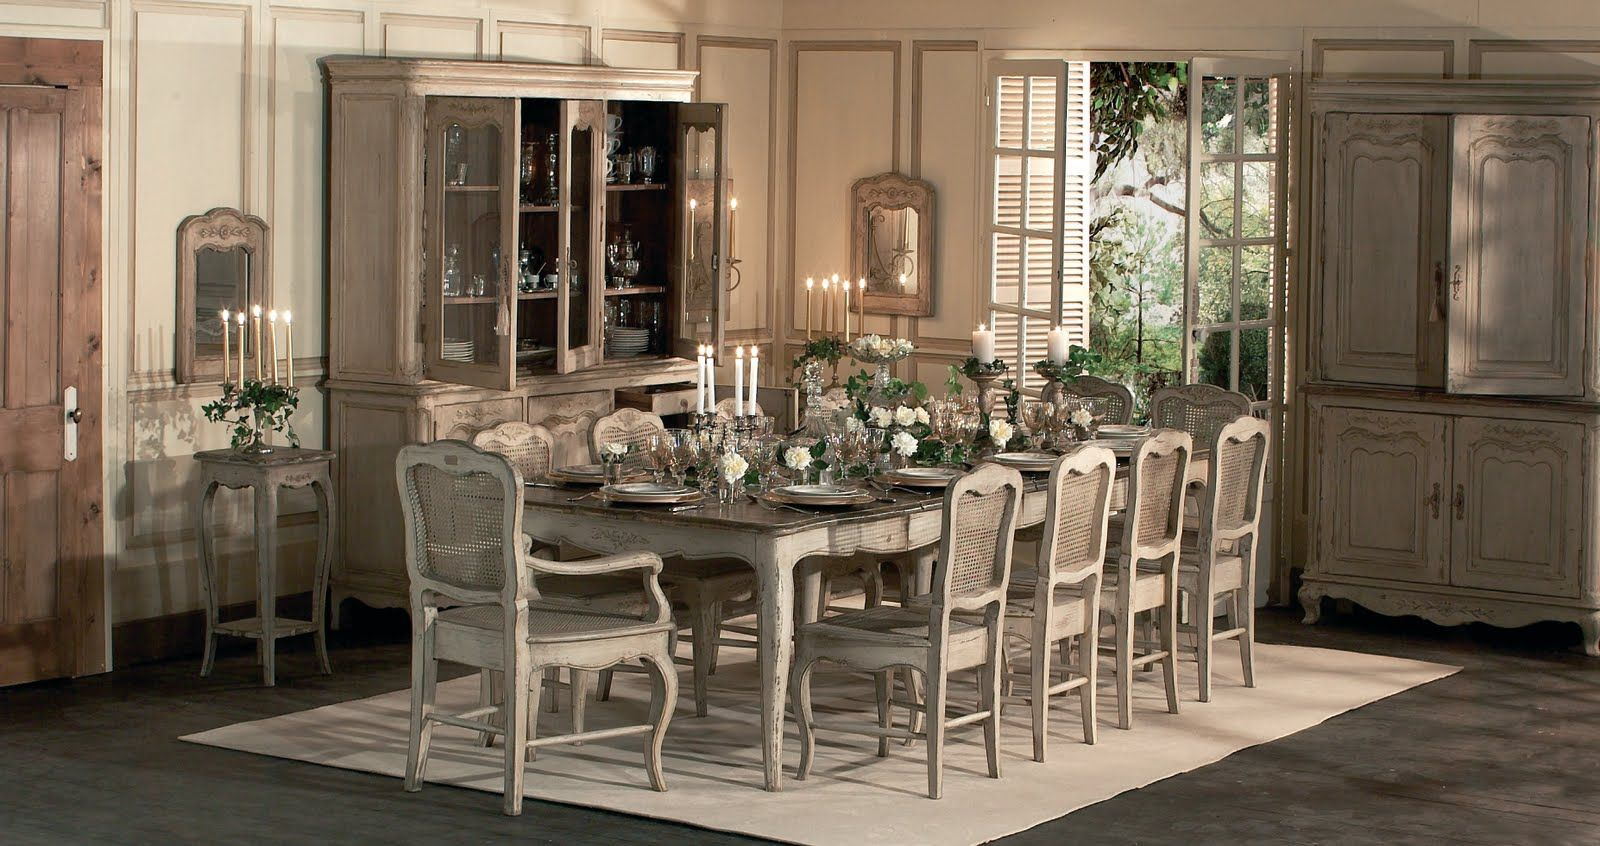 Captivating country dining room designs to inspire you luxury french country dining room design - Country dining room pictures ...